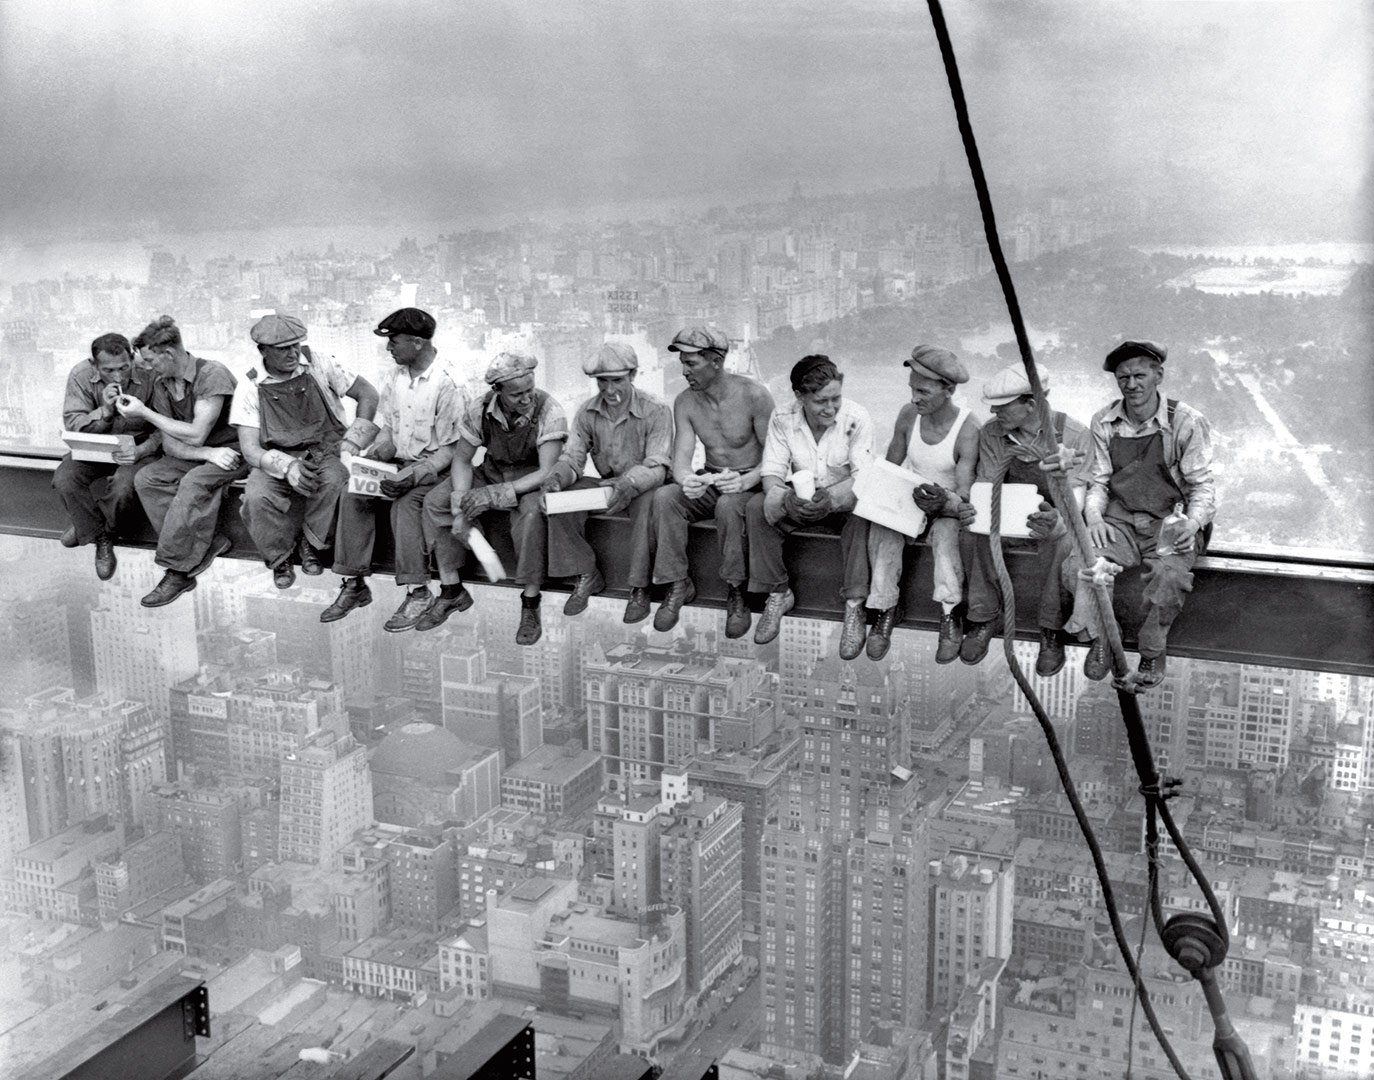 Pranzo in cima a un grattacielo, New York City, USA 1932 © Charles C.Ebbets, Thomas Kelley o William Leftwich